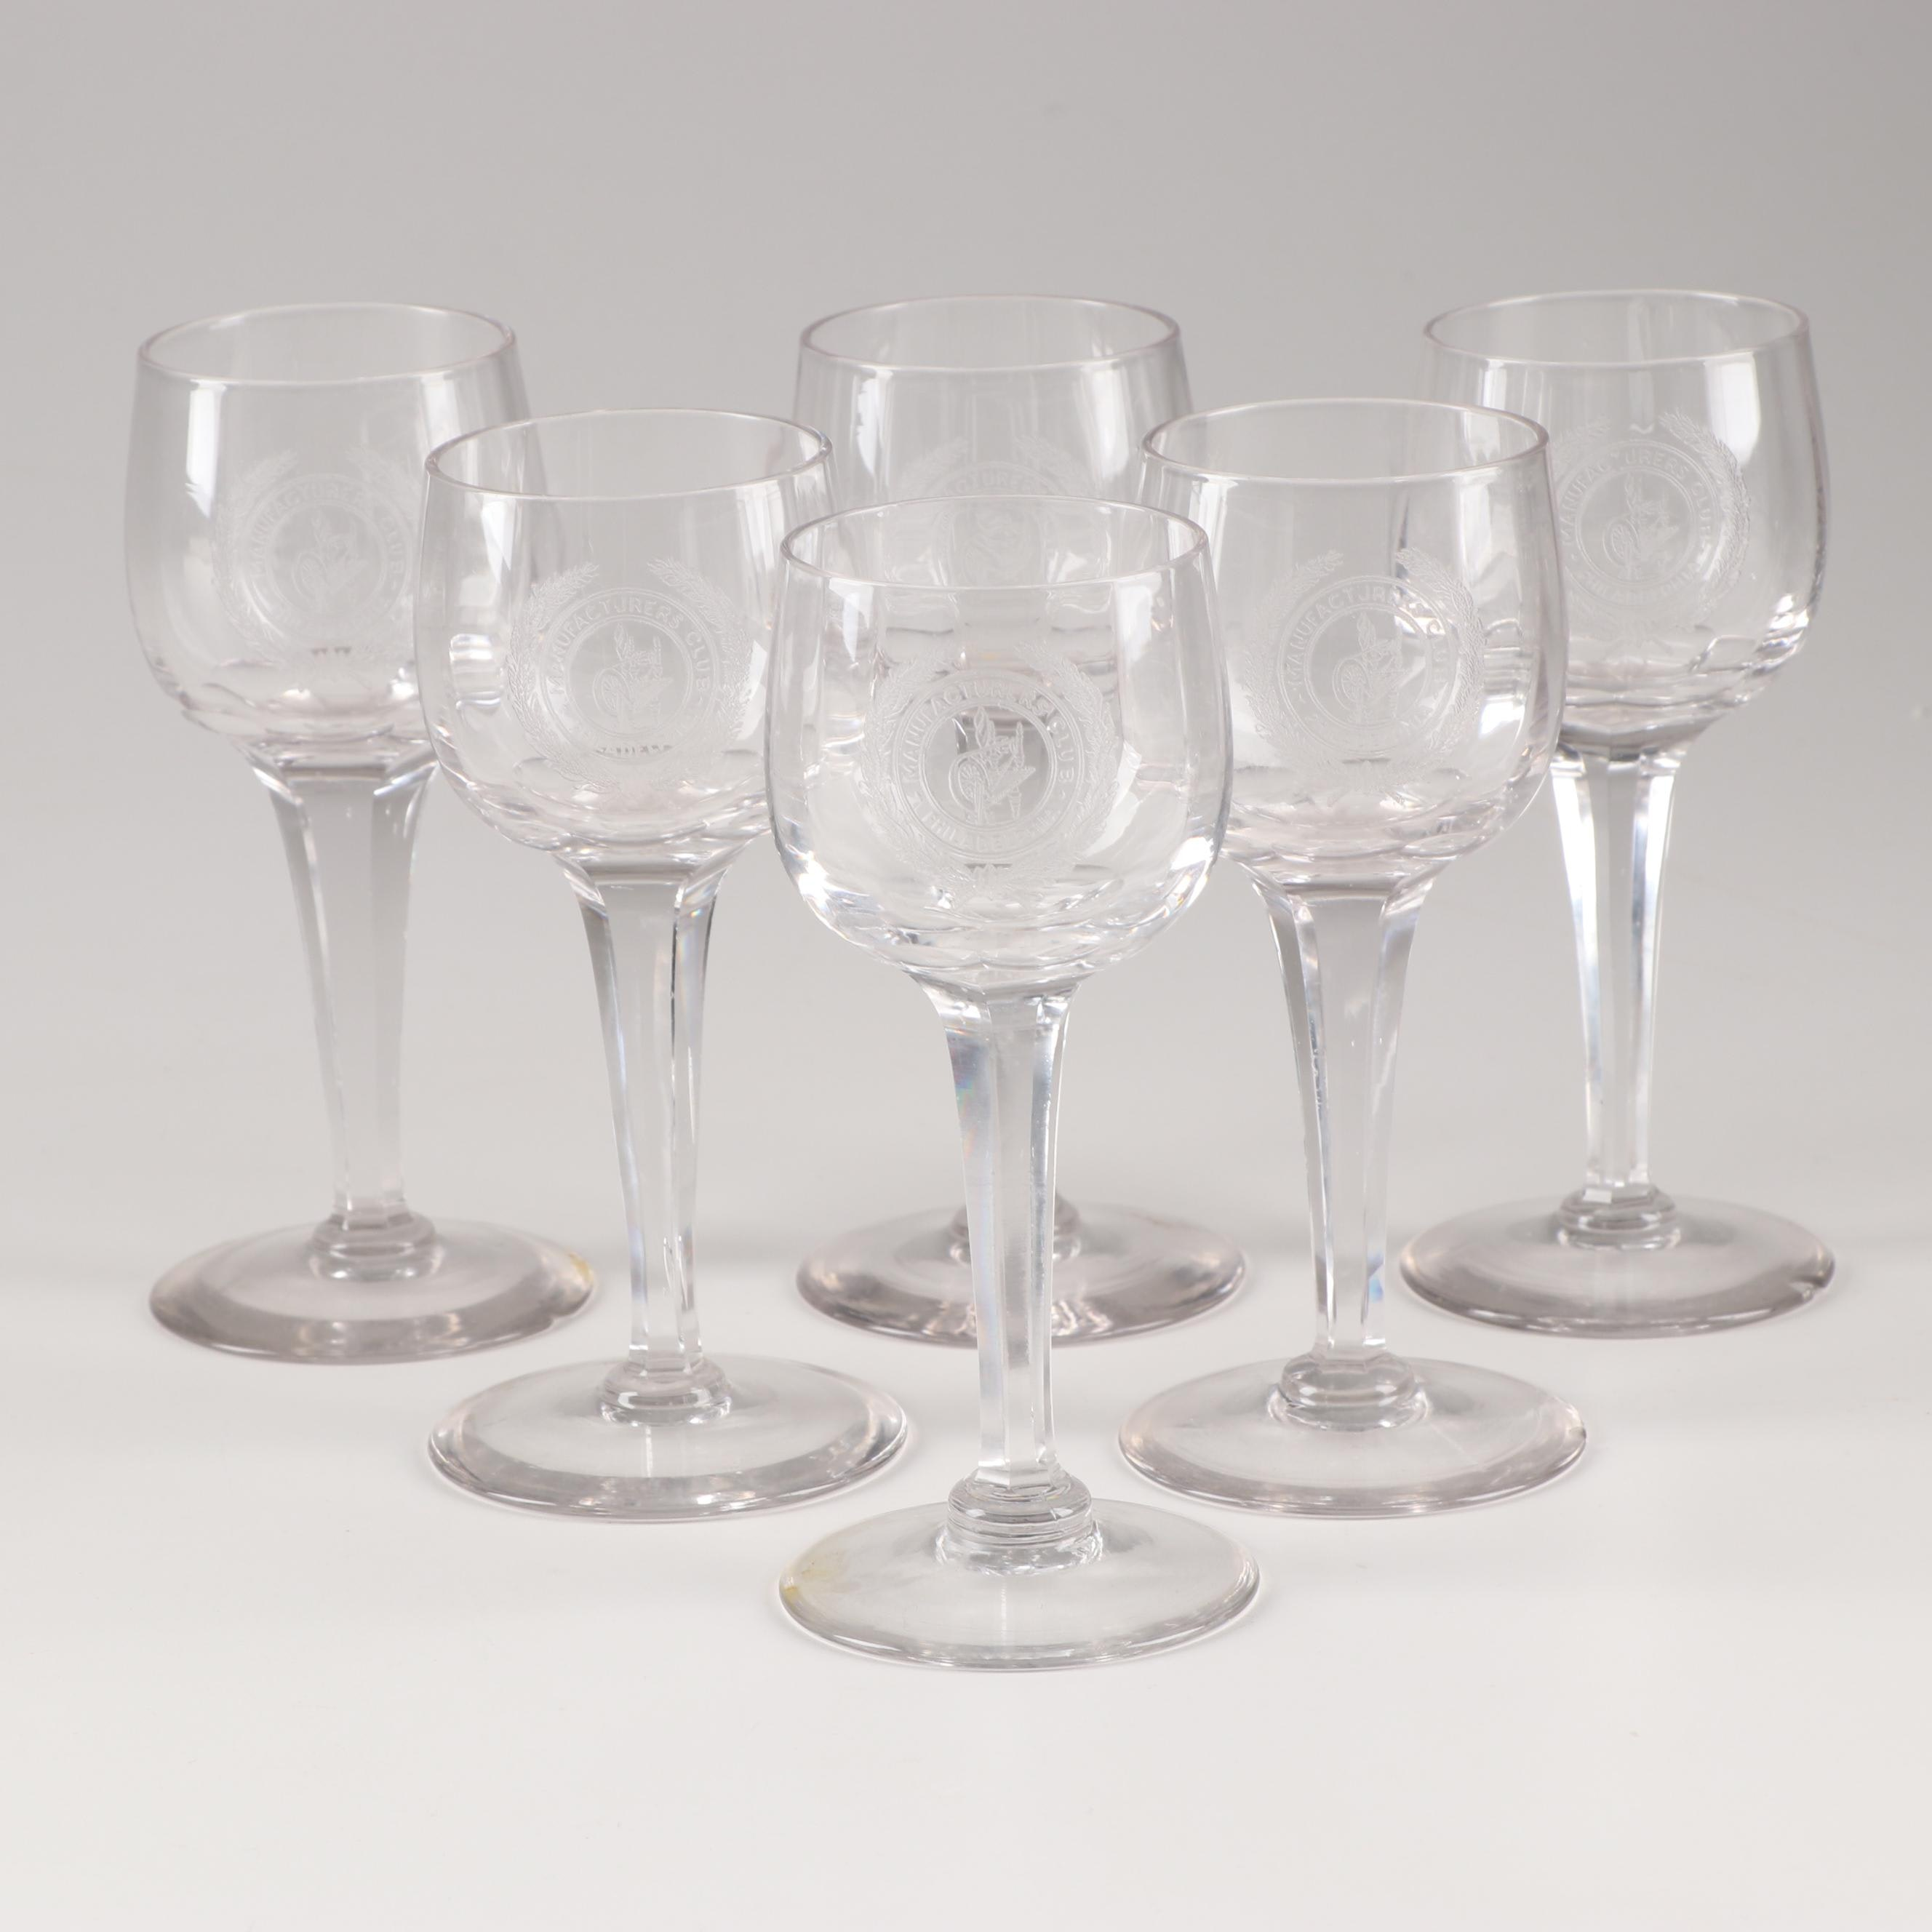 Manufacturers (Golf and Country) Club Philadelphia Toasting Glasses